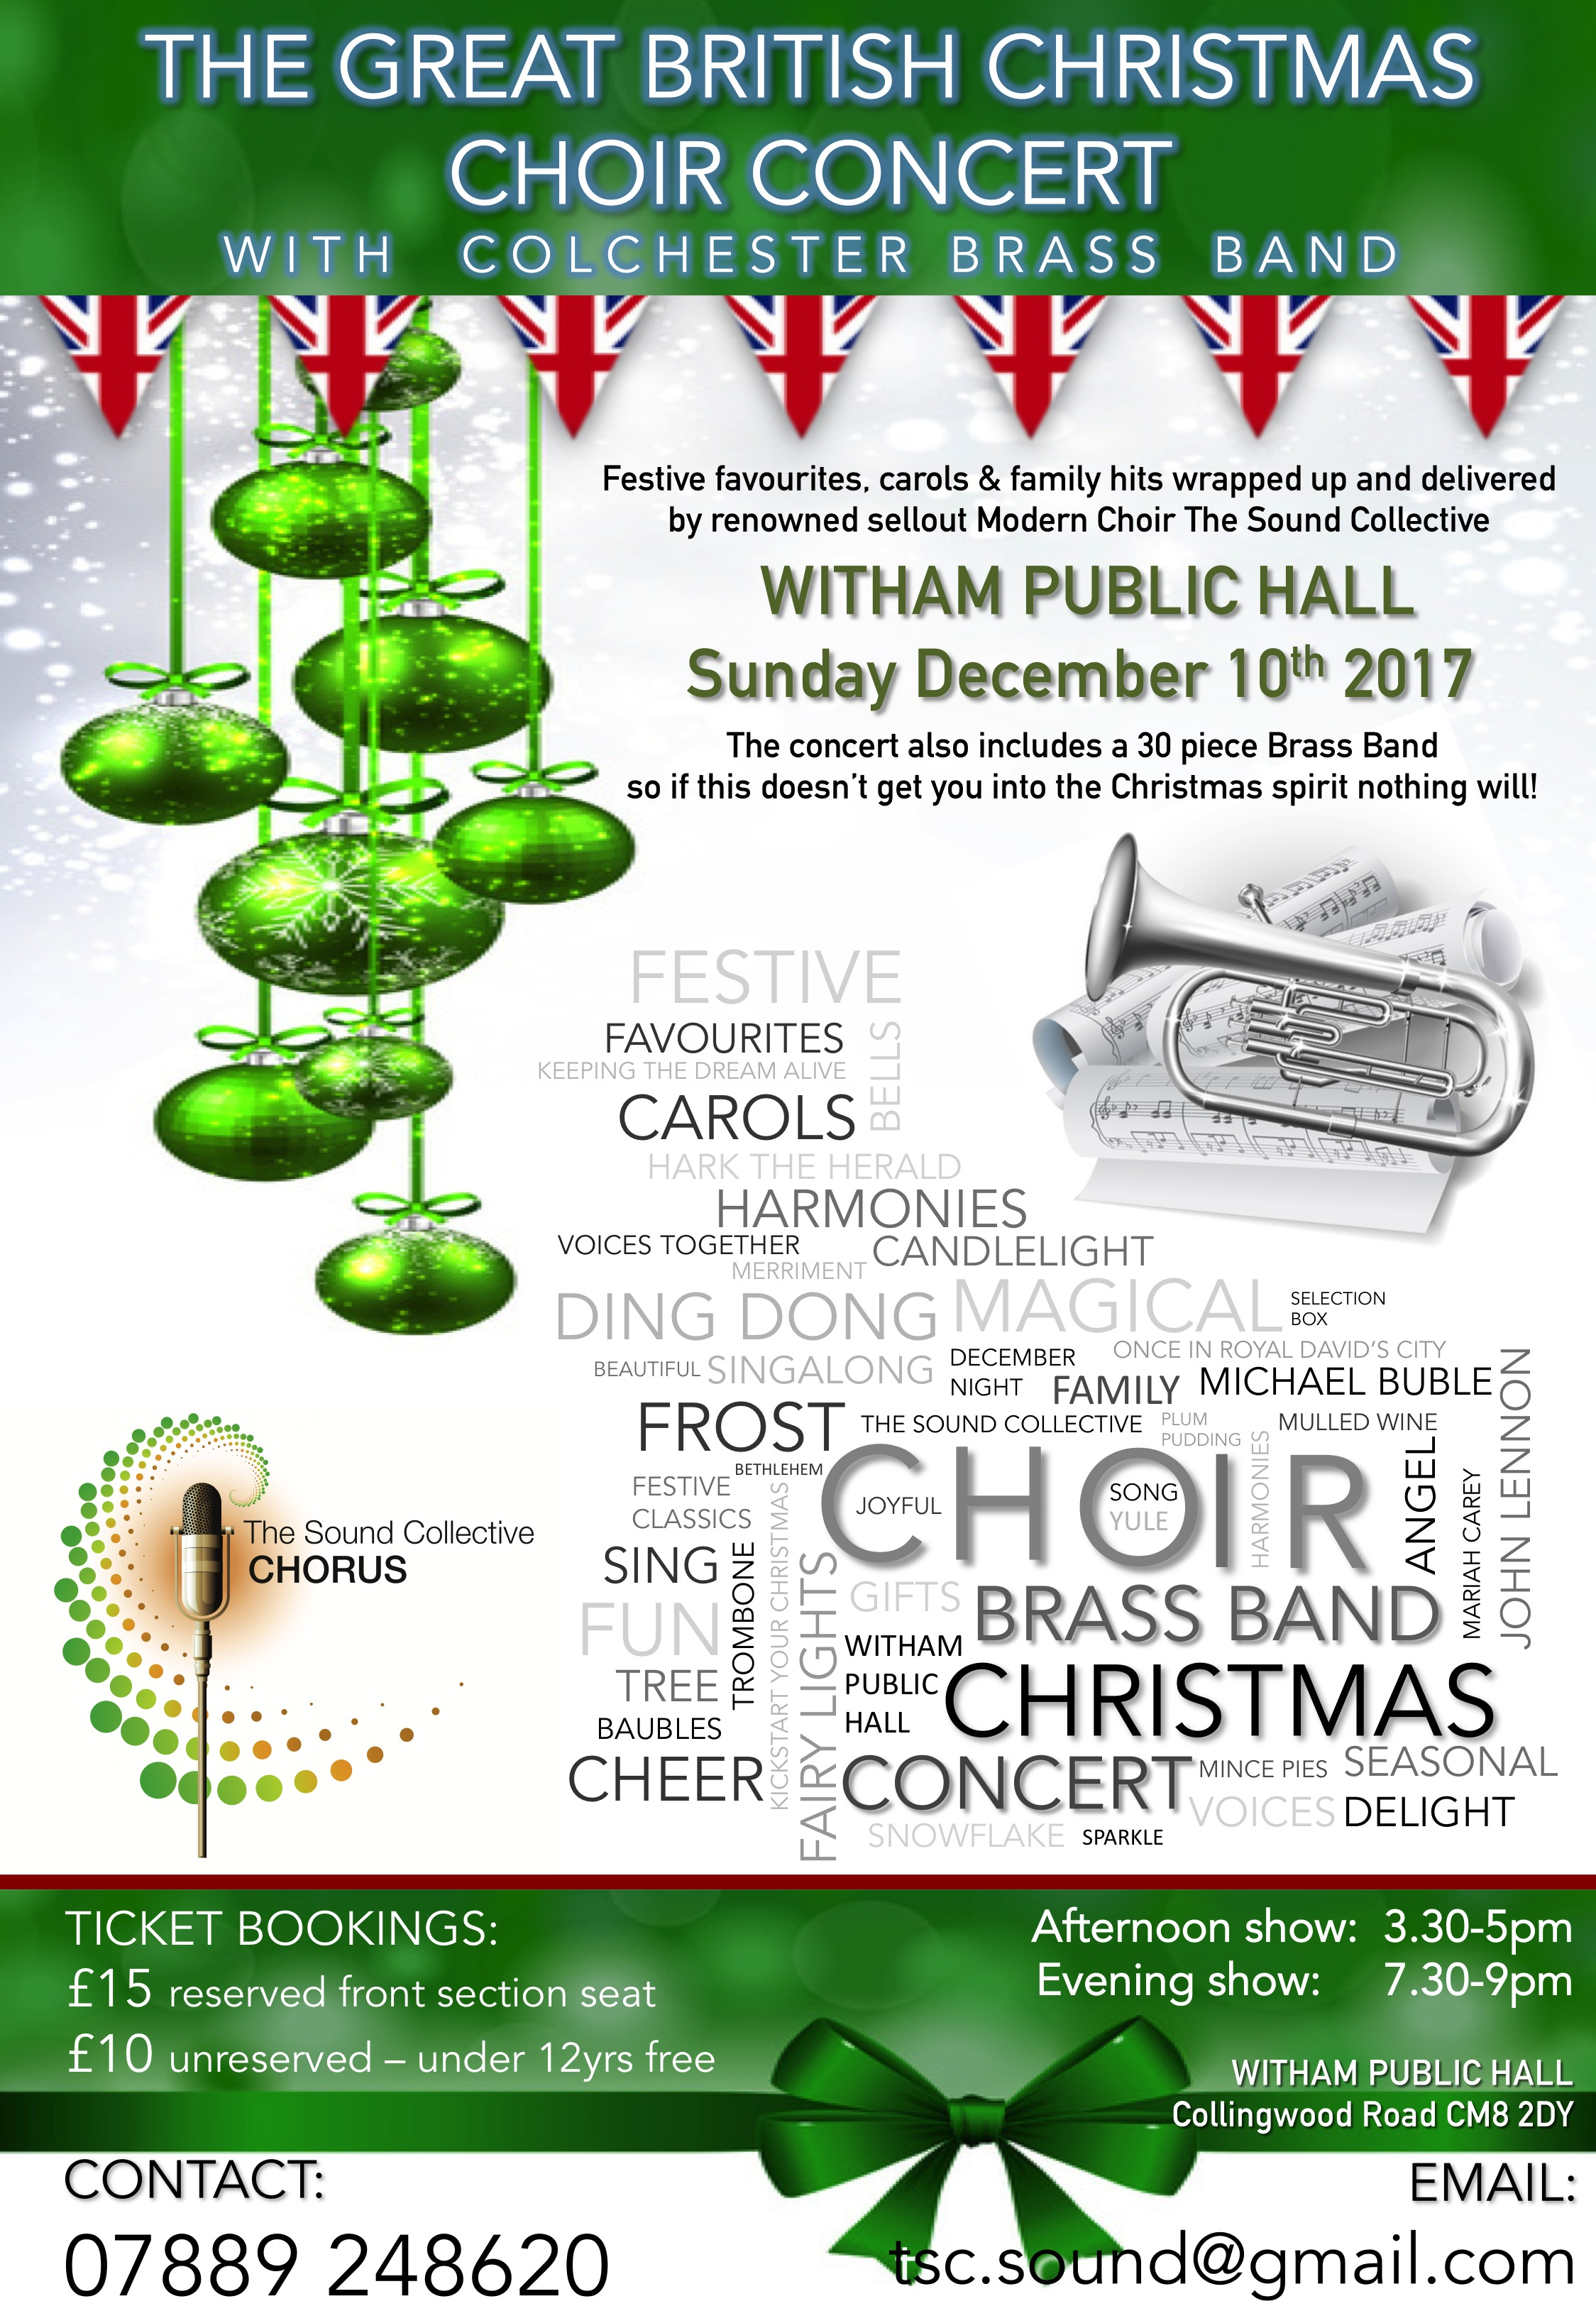 The Sound Collective Chorus Presents - A Great British Christmas Choir Concert